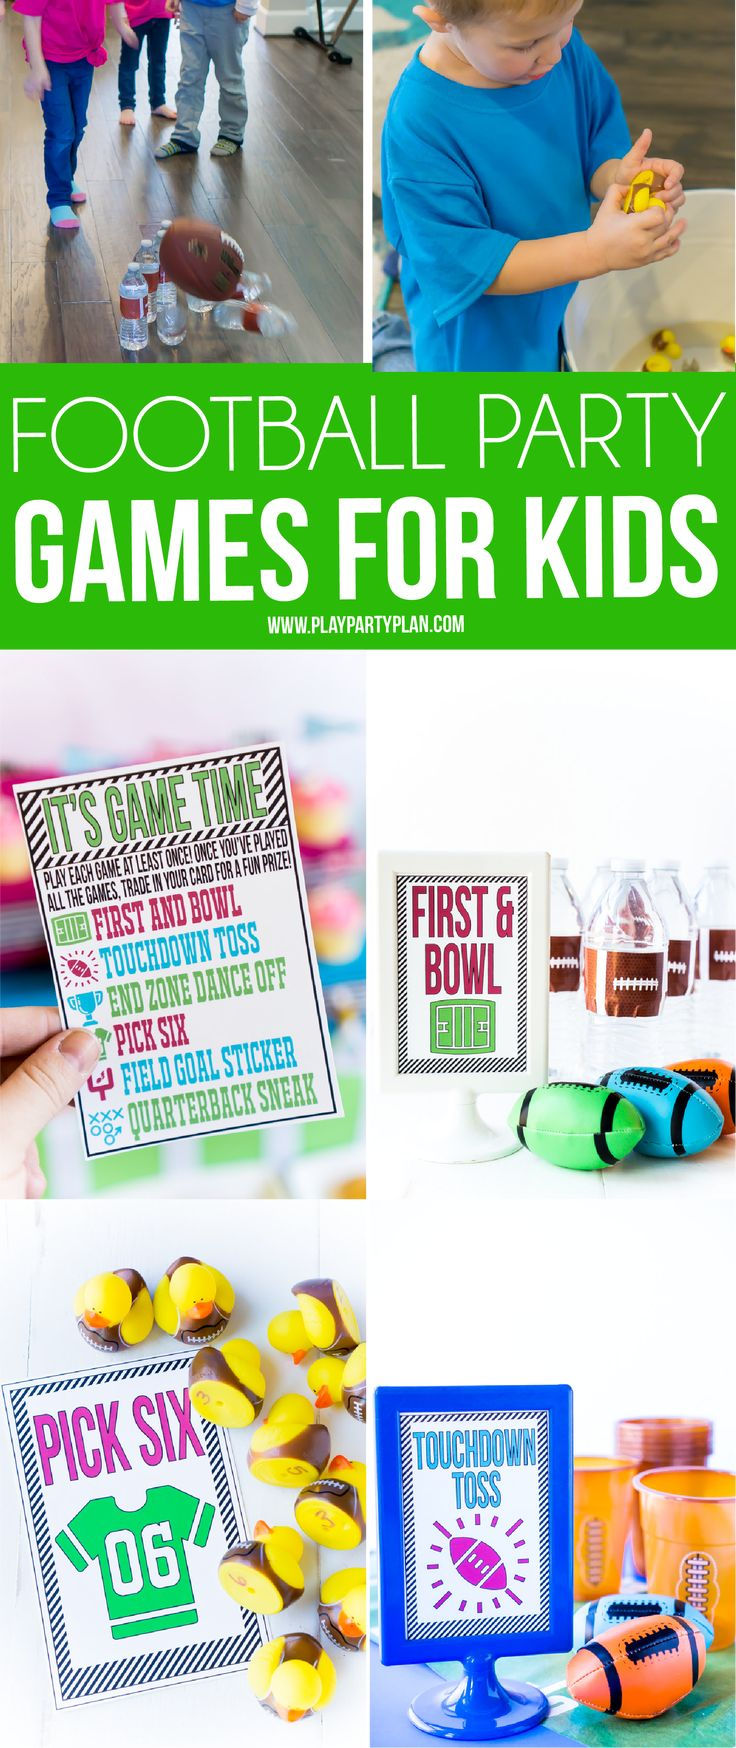 DIY football party games for kids with free printable instruction cards! Definitely six of the best things to do at a football party whether it be Super Bowl or a kids football birthday party!  via @playpartyplan